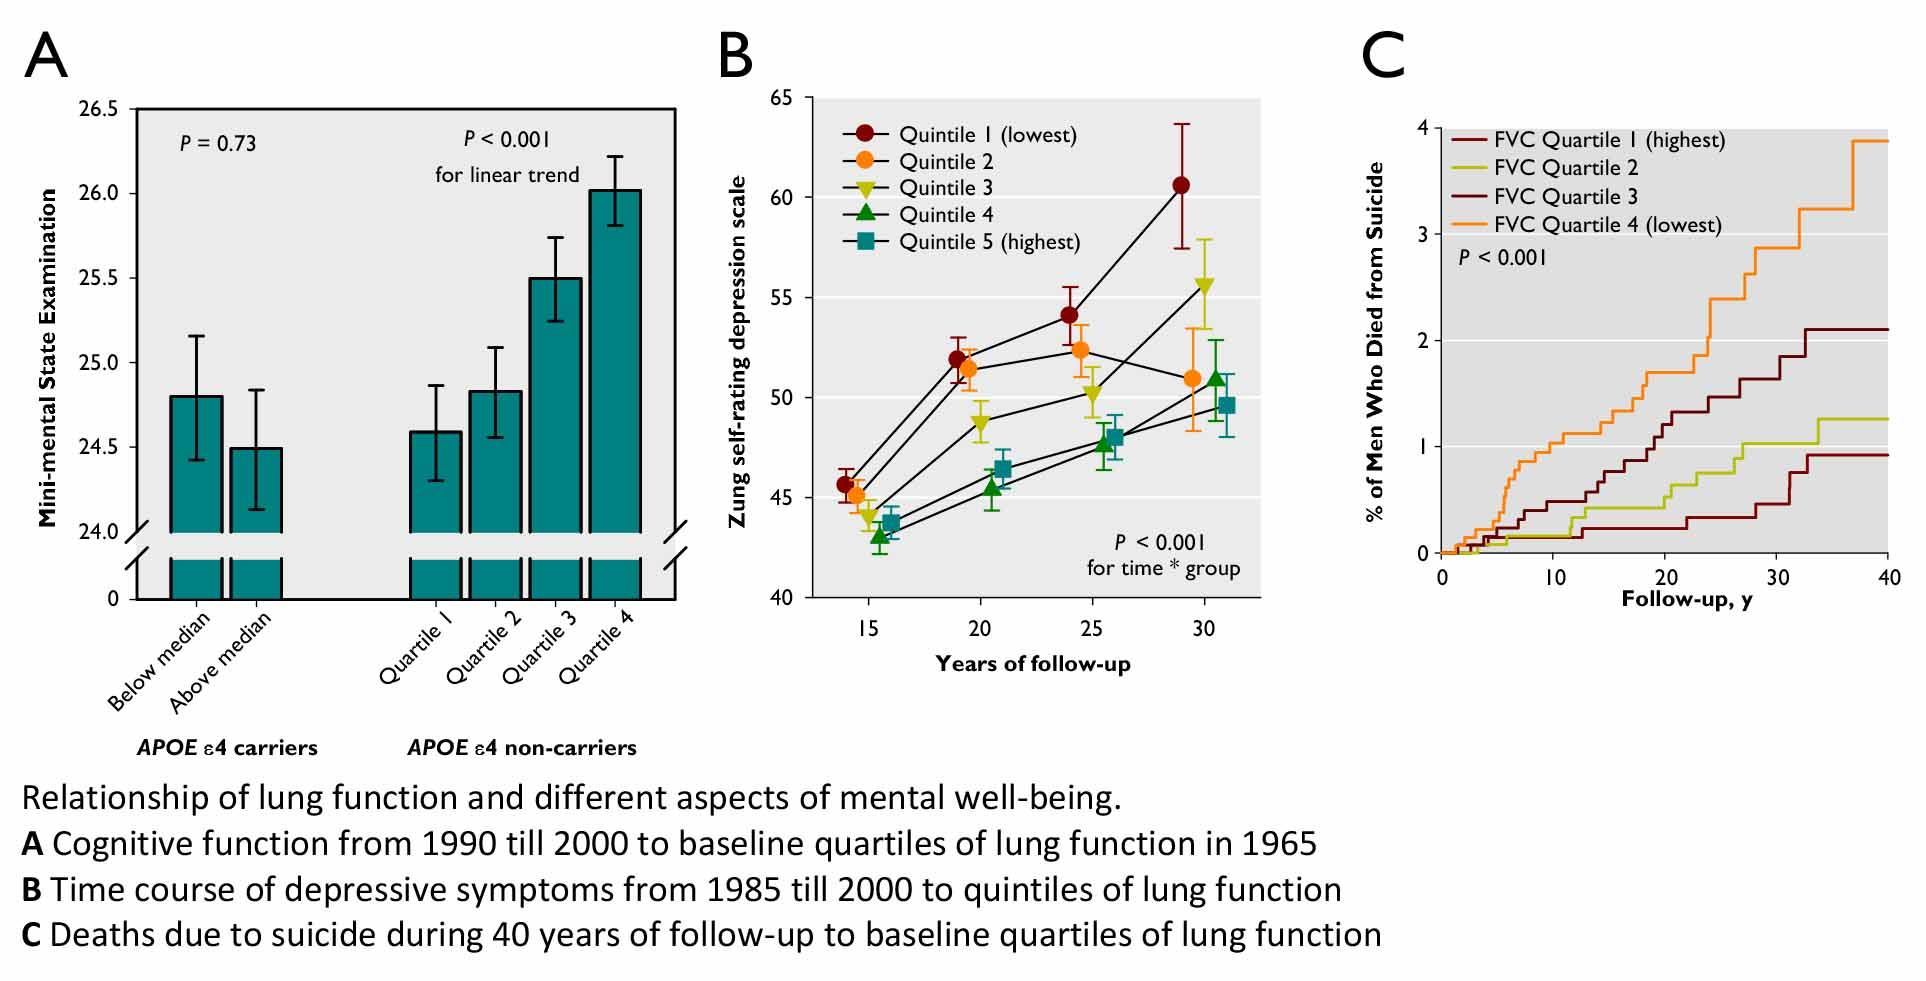 Lung Function Cognitive Function Depressive Symptoms And Suicide